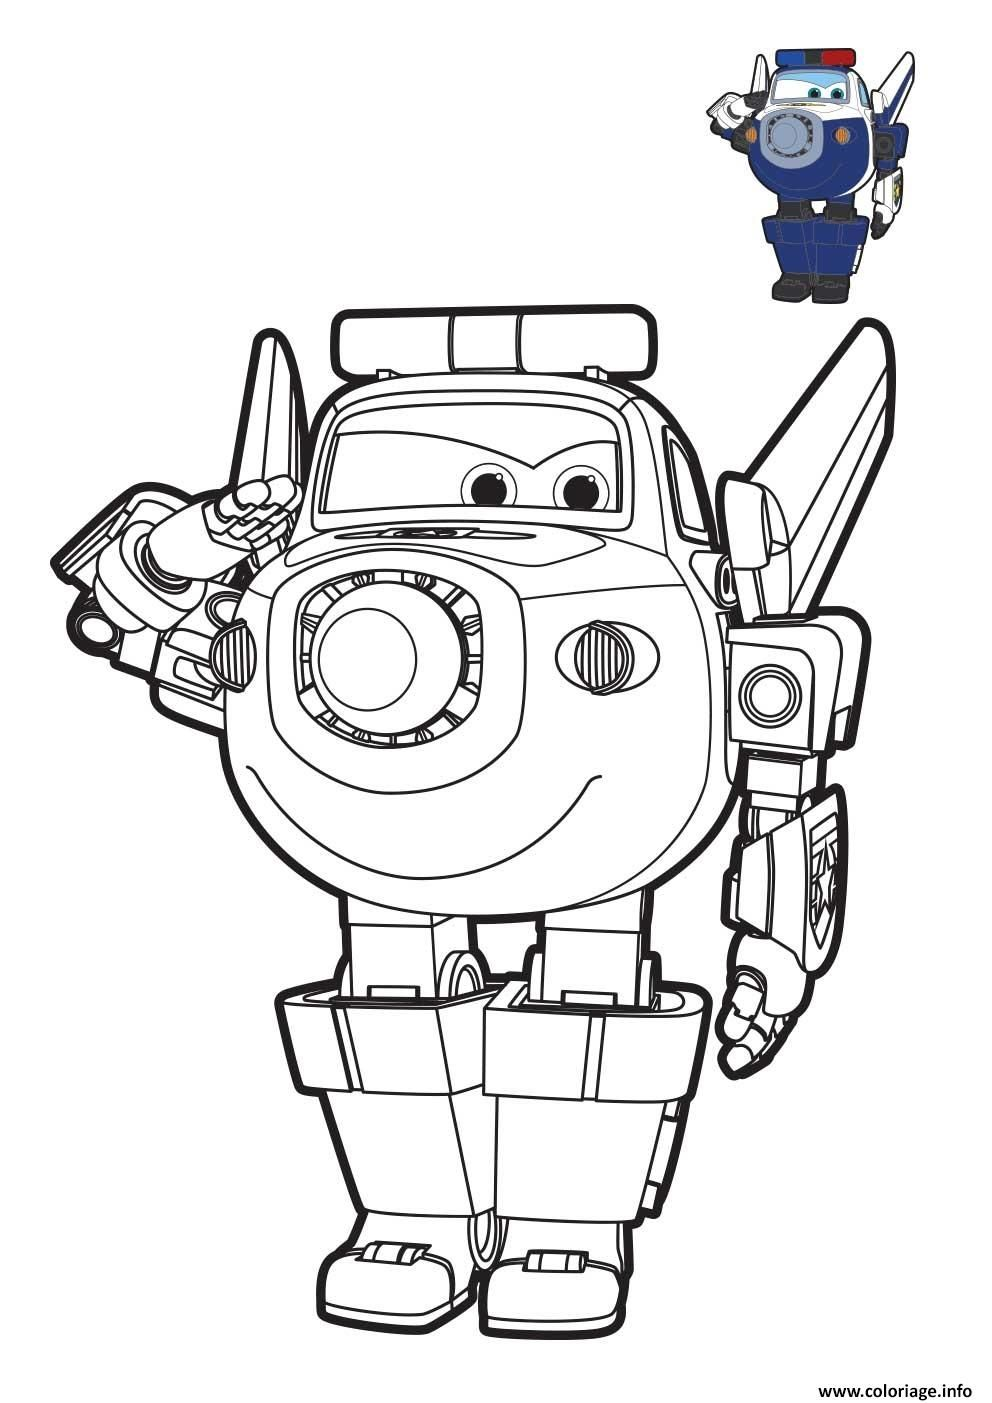 Coloriage Super Wings Paul Robot Dessin A Imprimer Coloriage